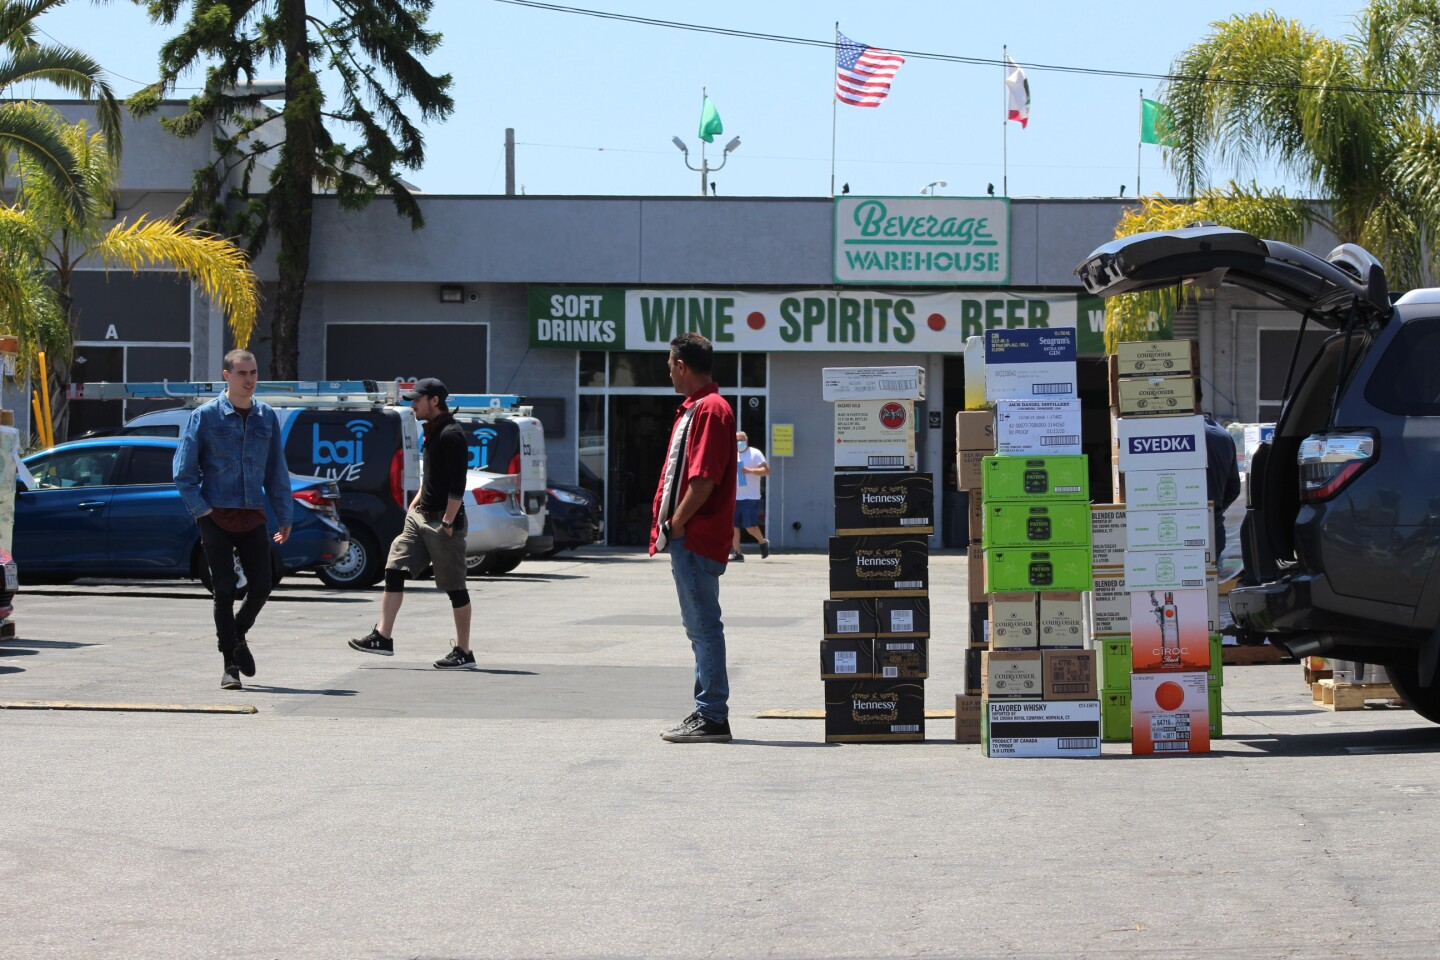 Parking lot of Beverage Warehouse, where shipments of alcohol have just come in   Karen Foshay